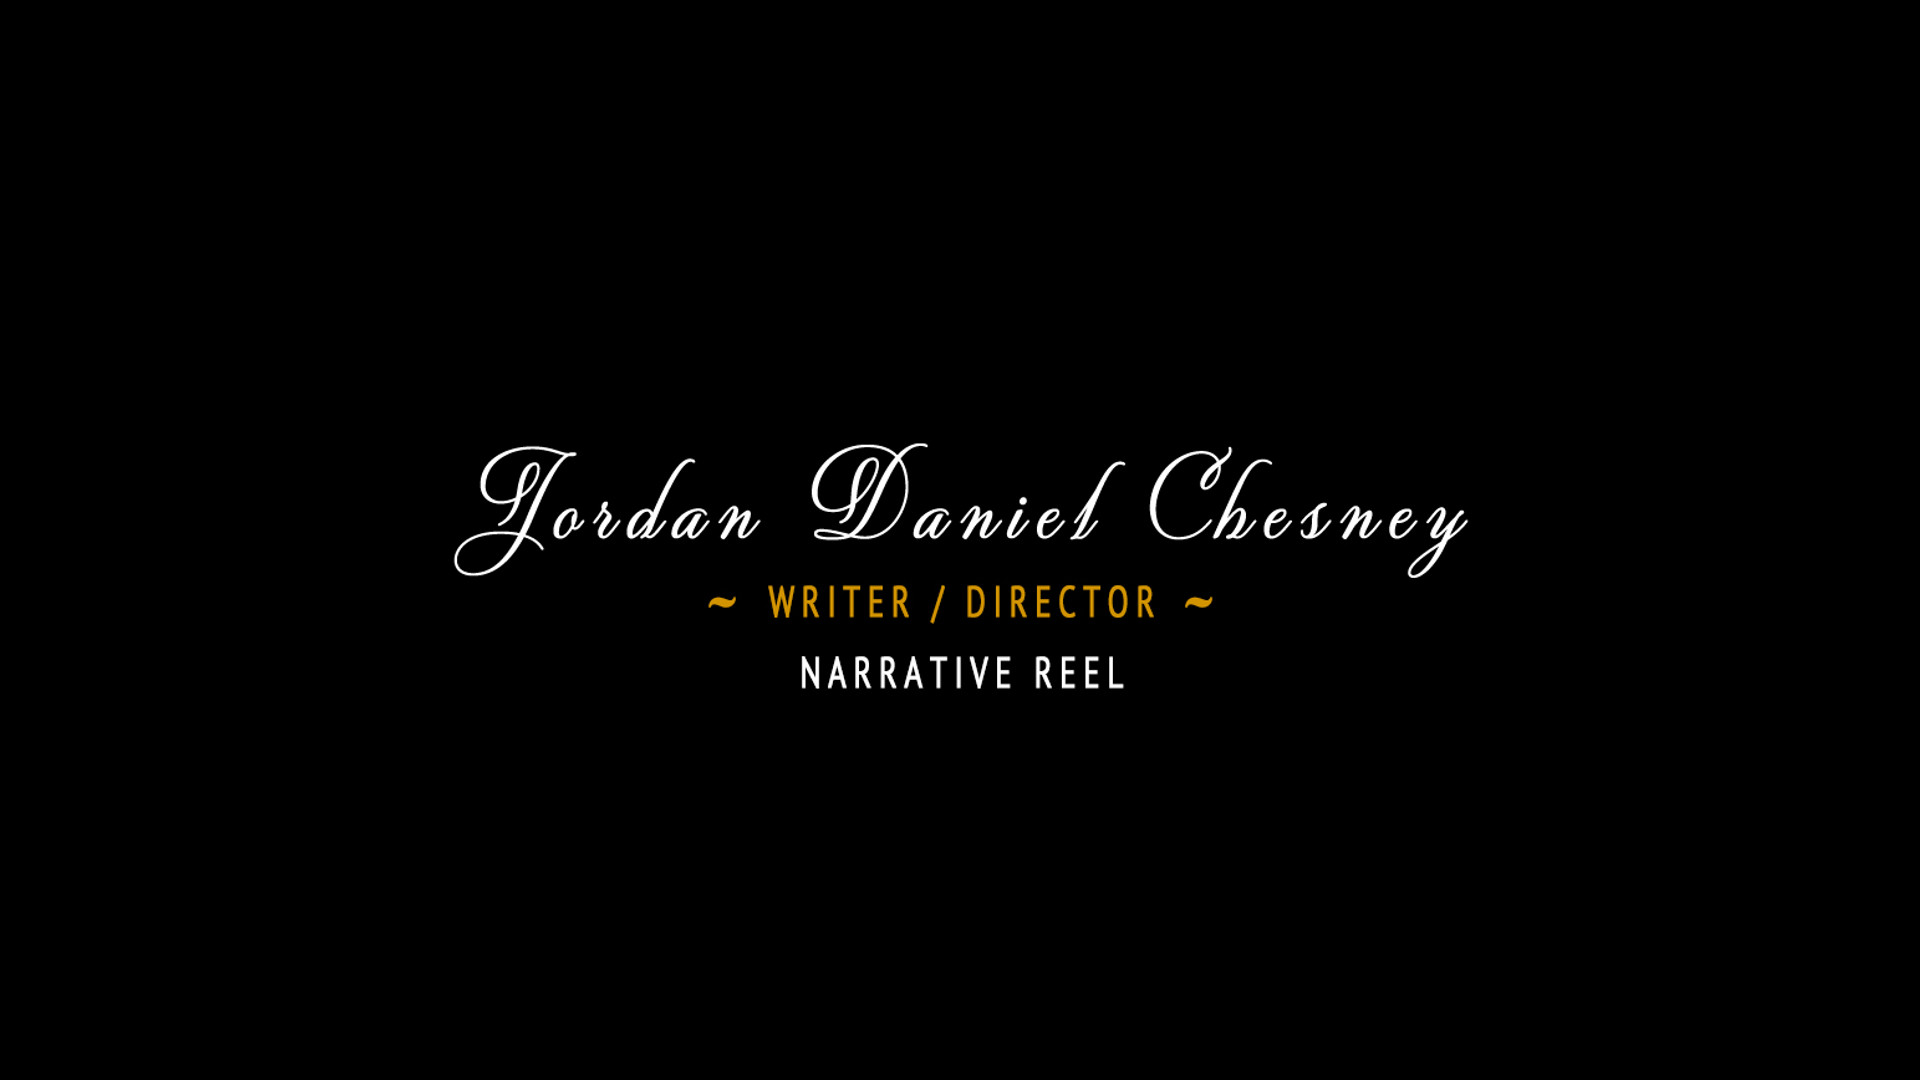 Narrative Reel